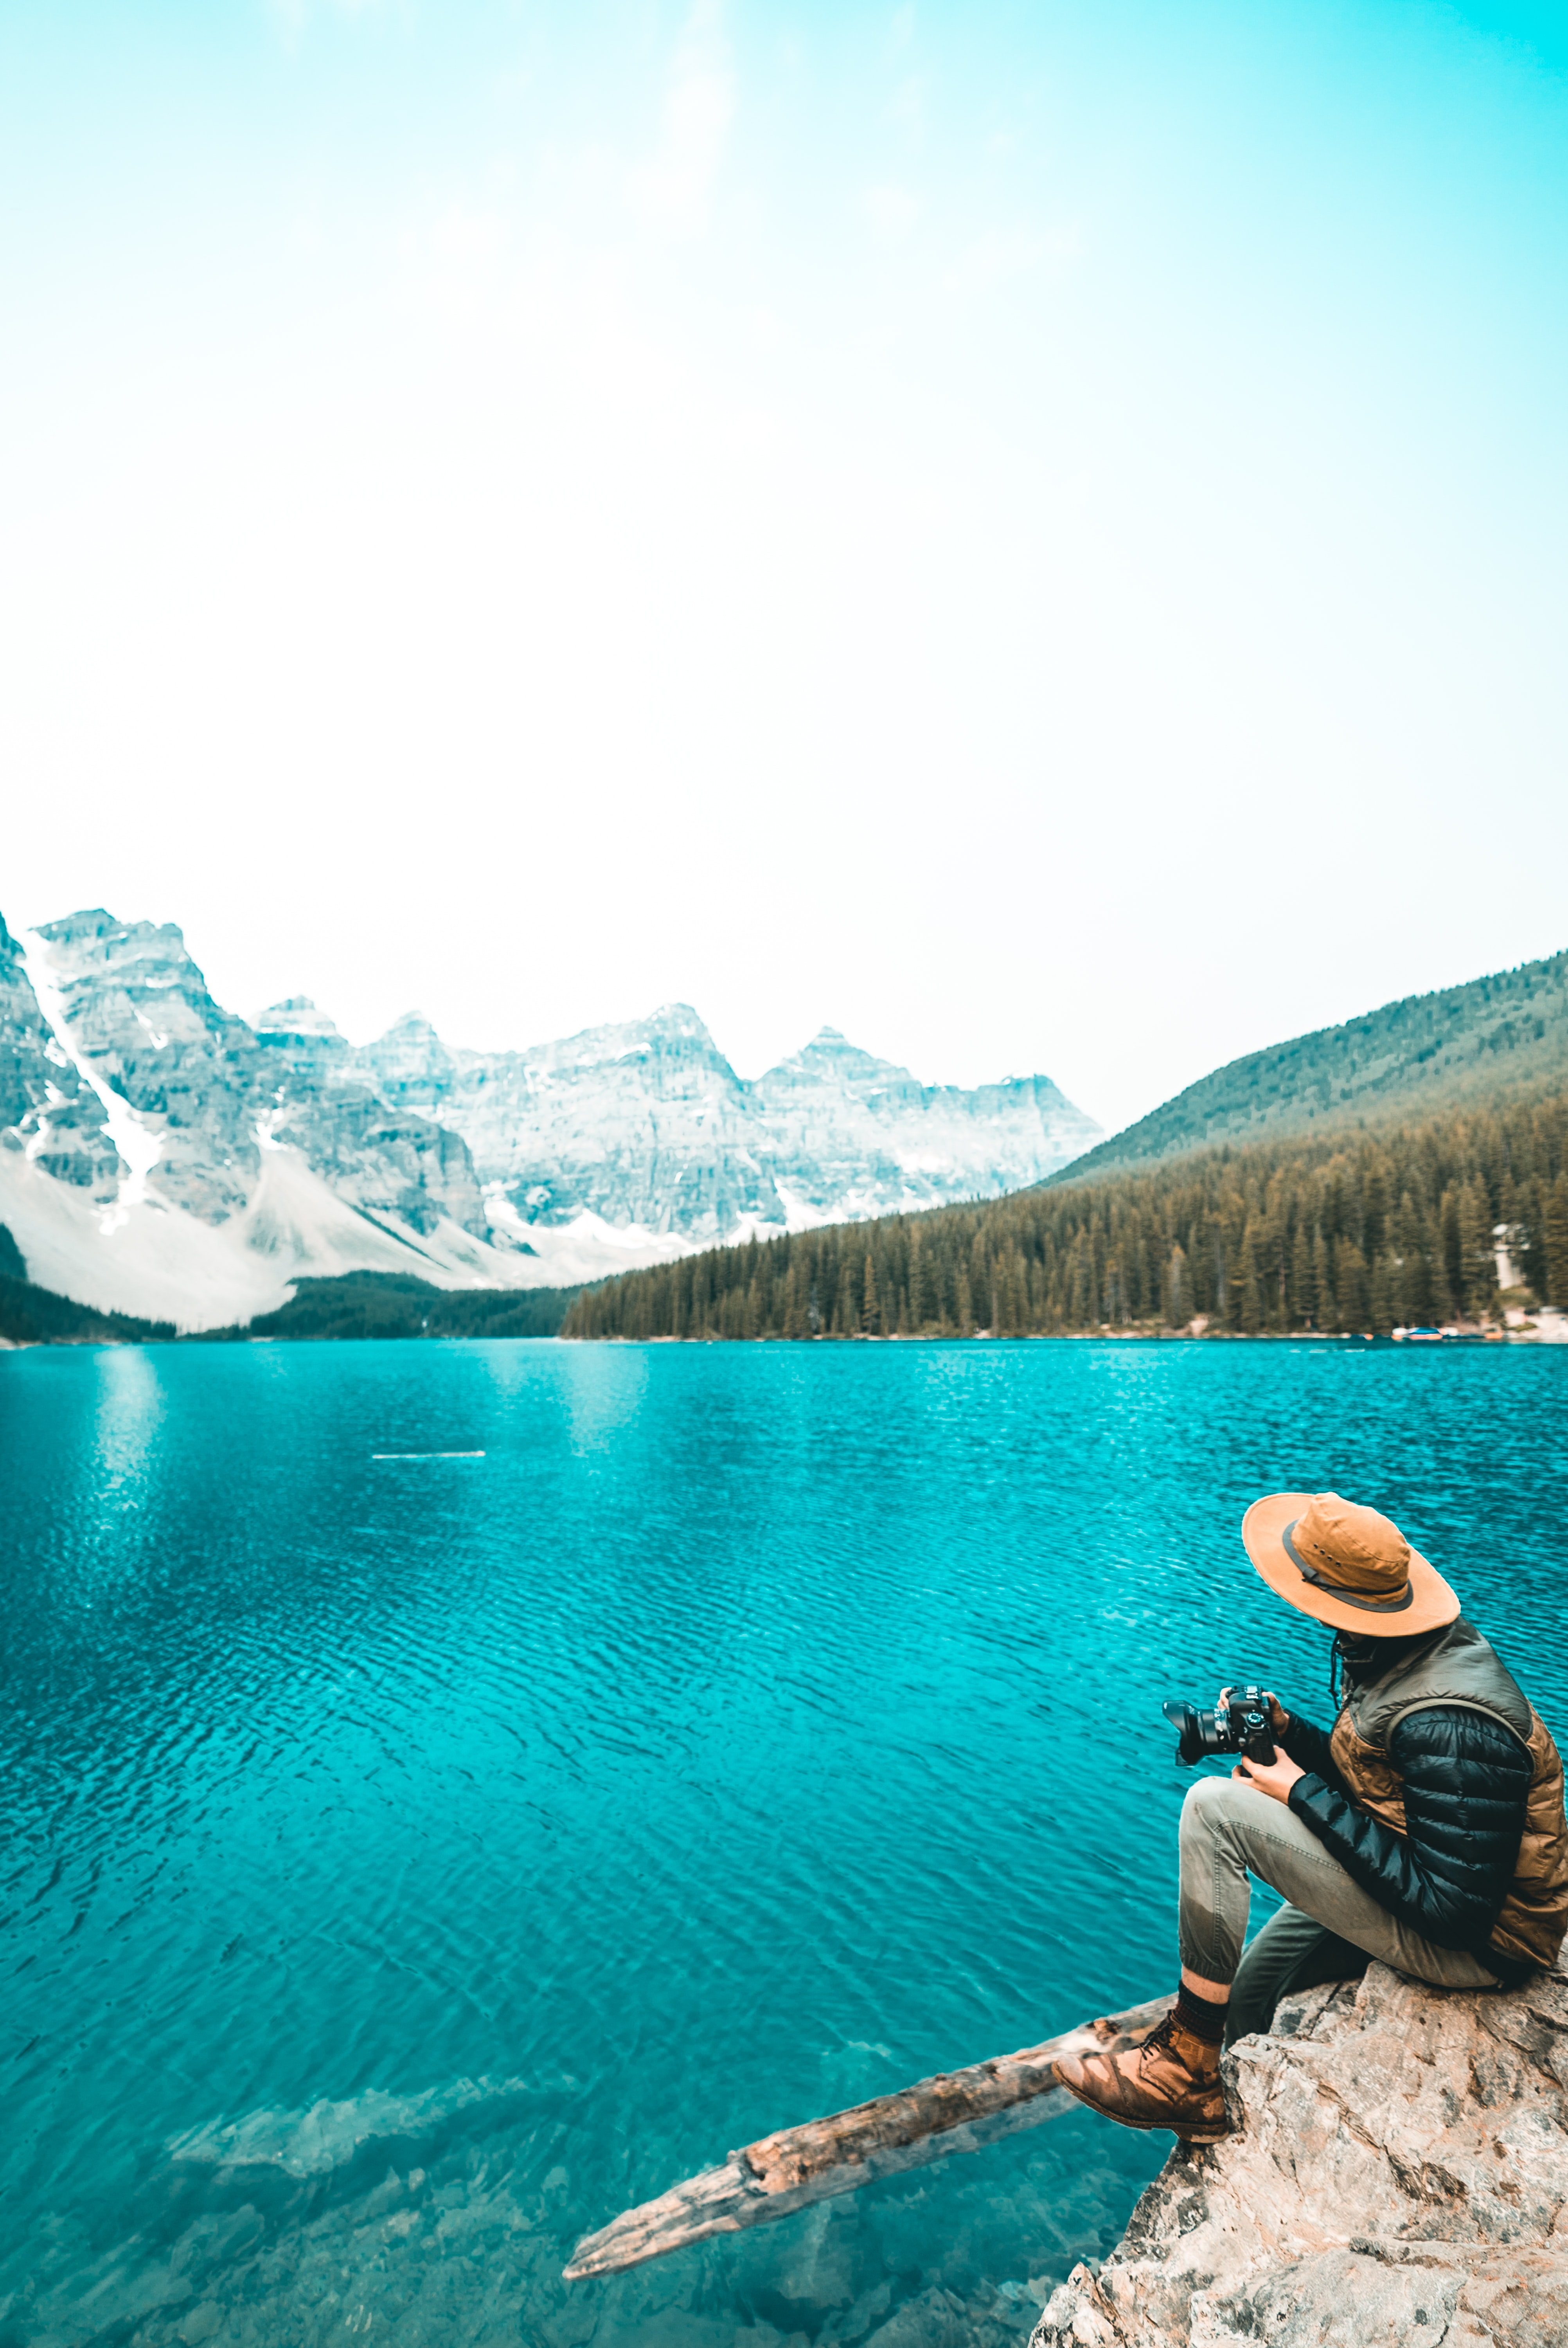 A person sitting on a rock over an azure lake and holding a camera